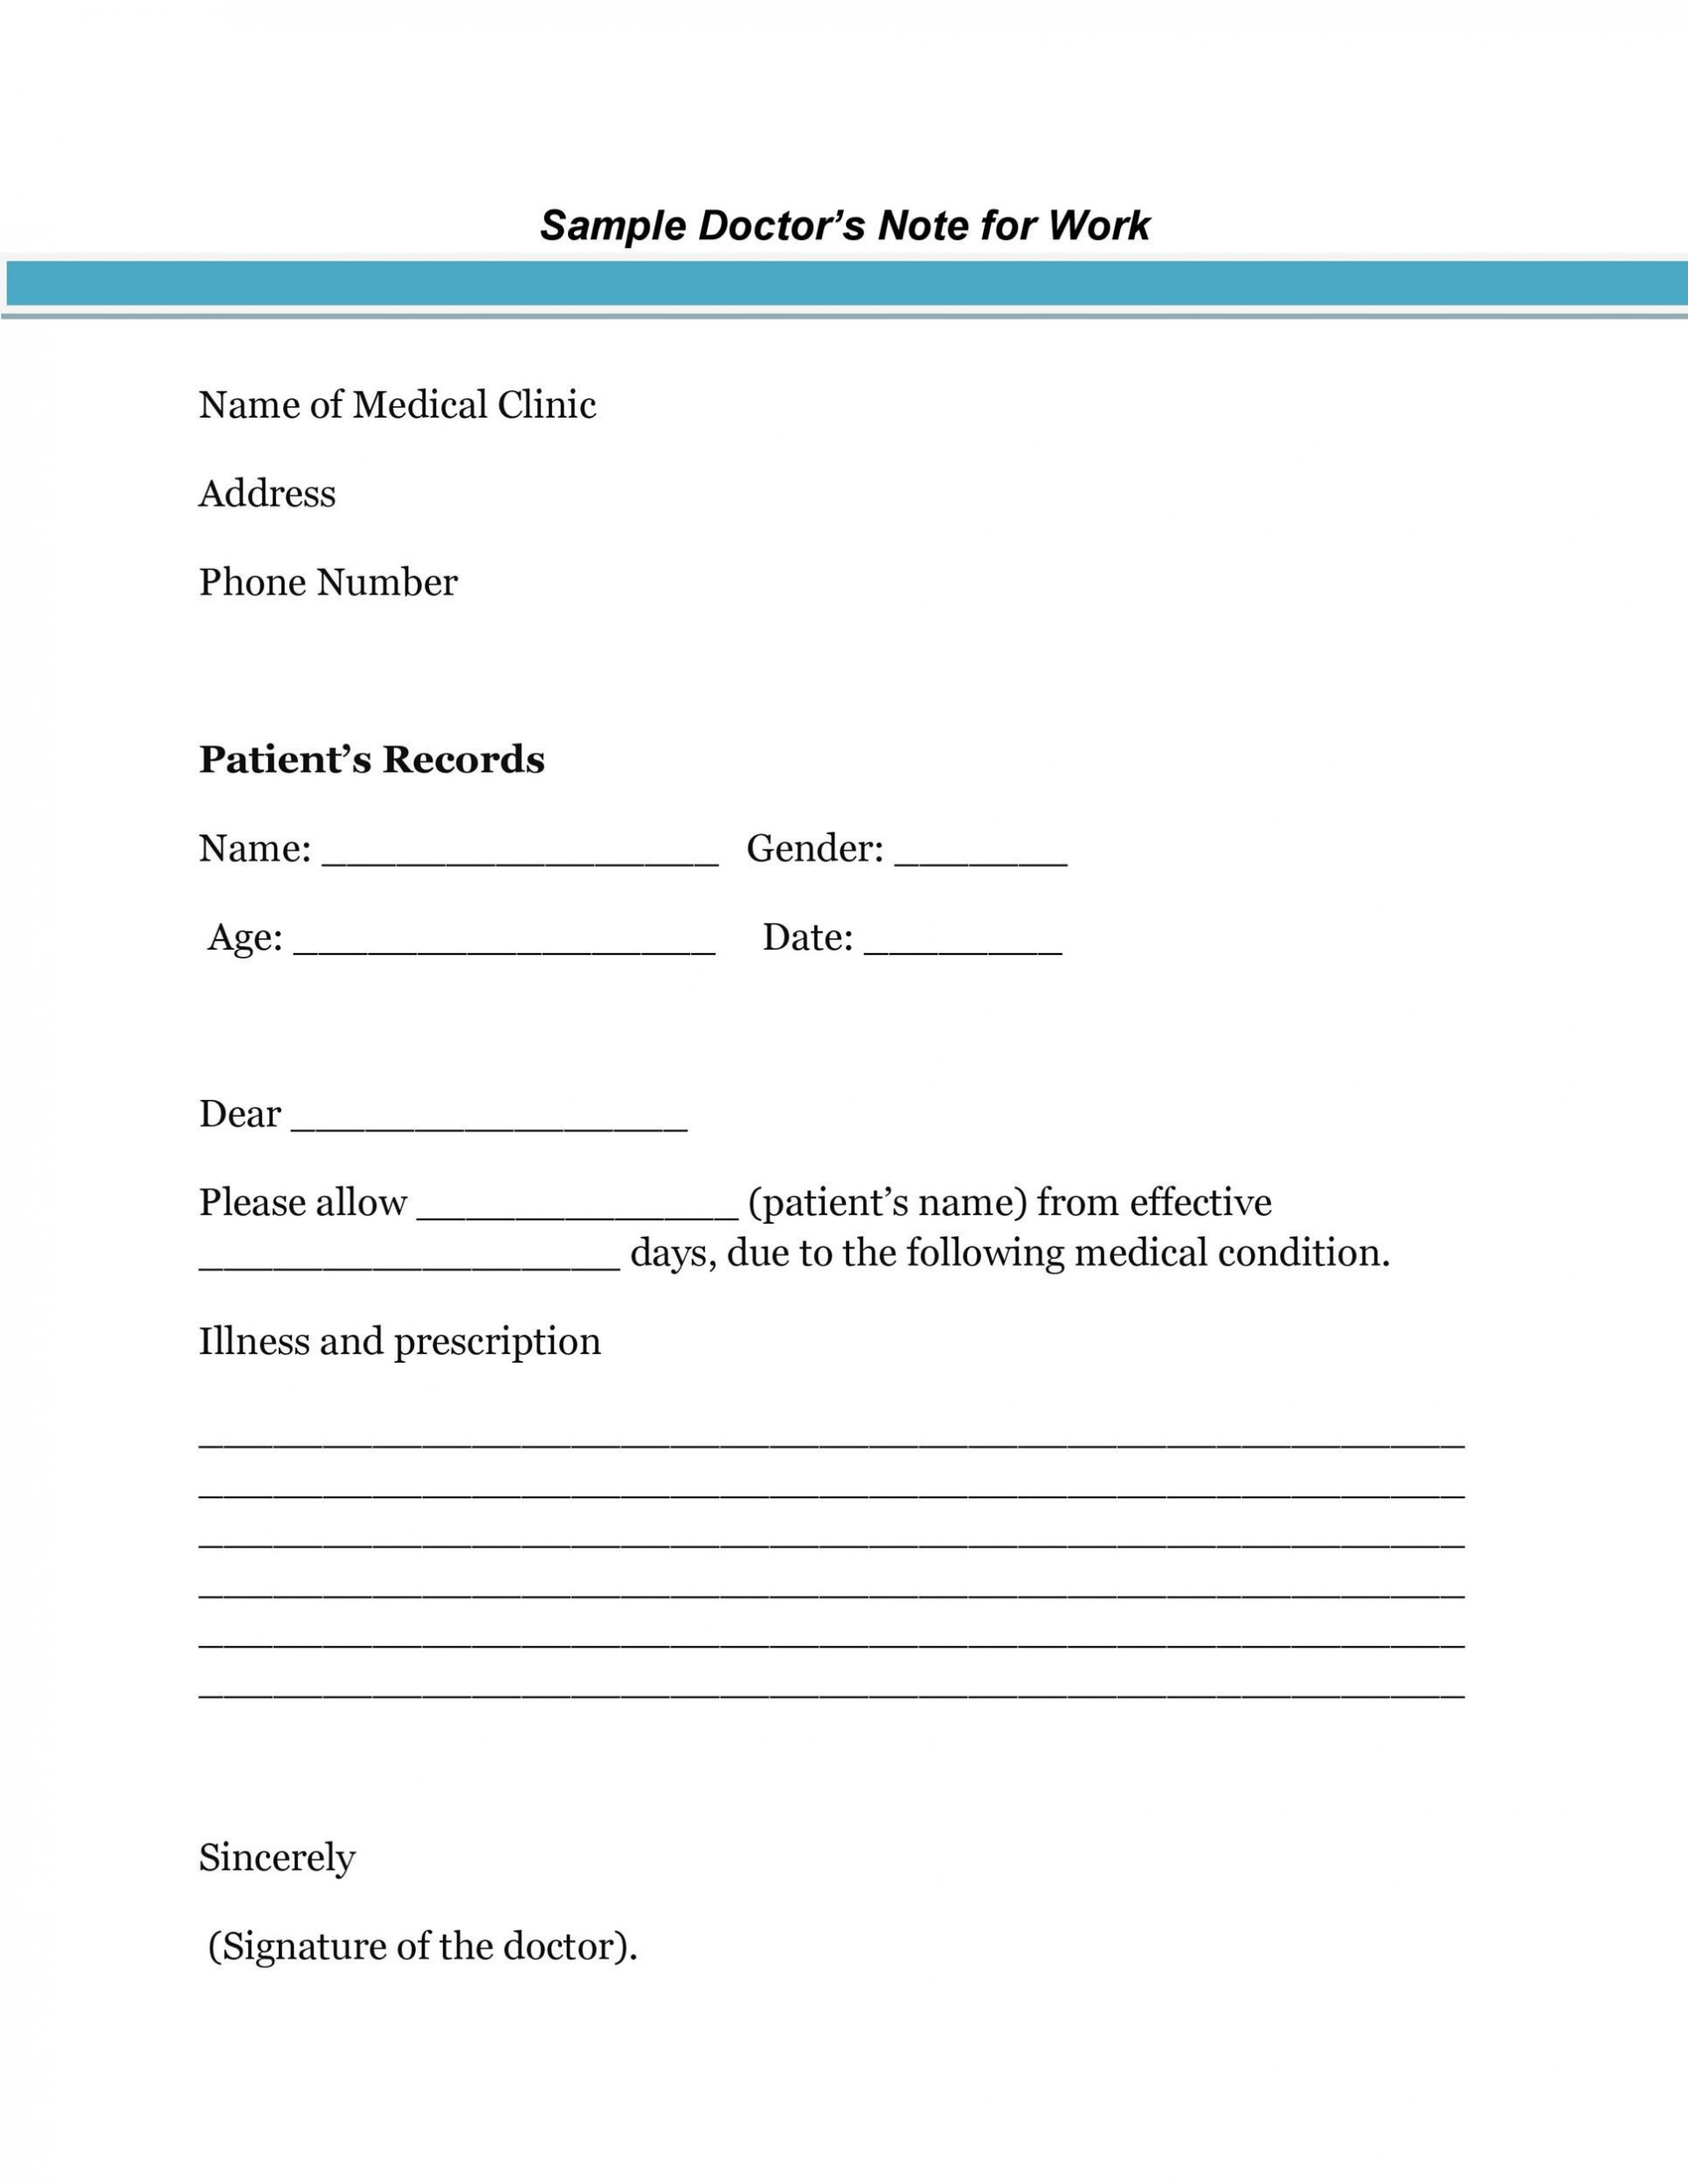 006 Sensational Doctor Note For Work Template Highest Clarity  Doctor' Missing Excuse Pdf1920